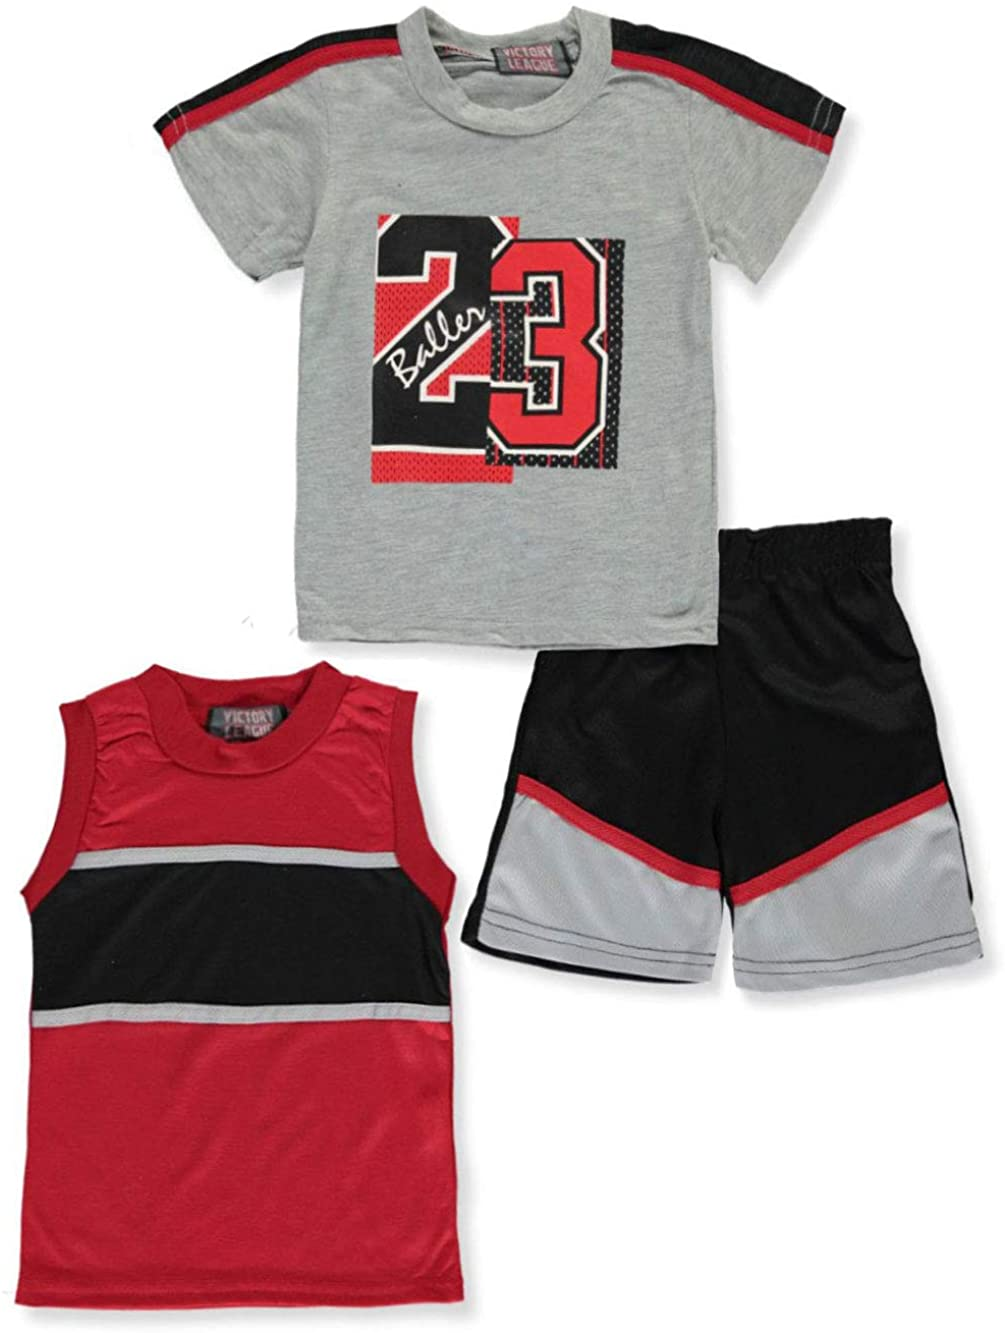 Victory League Baby Boys' Baller 3-Piece Shorts Set Outfit - Gray Multi, 12